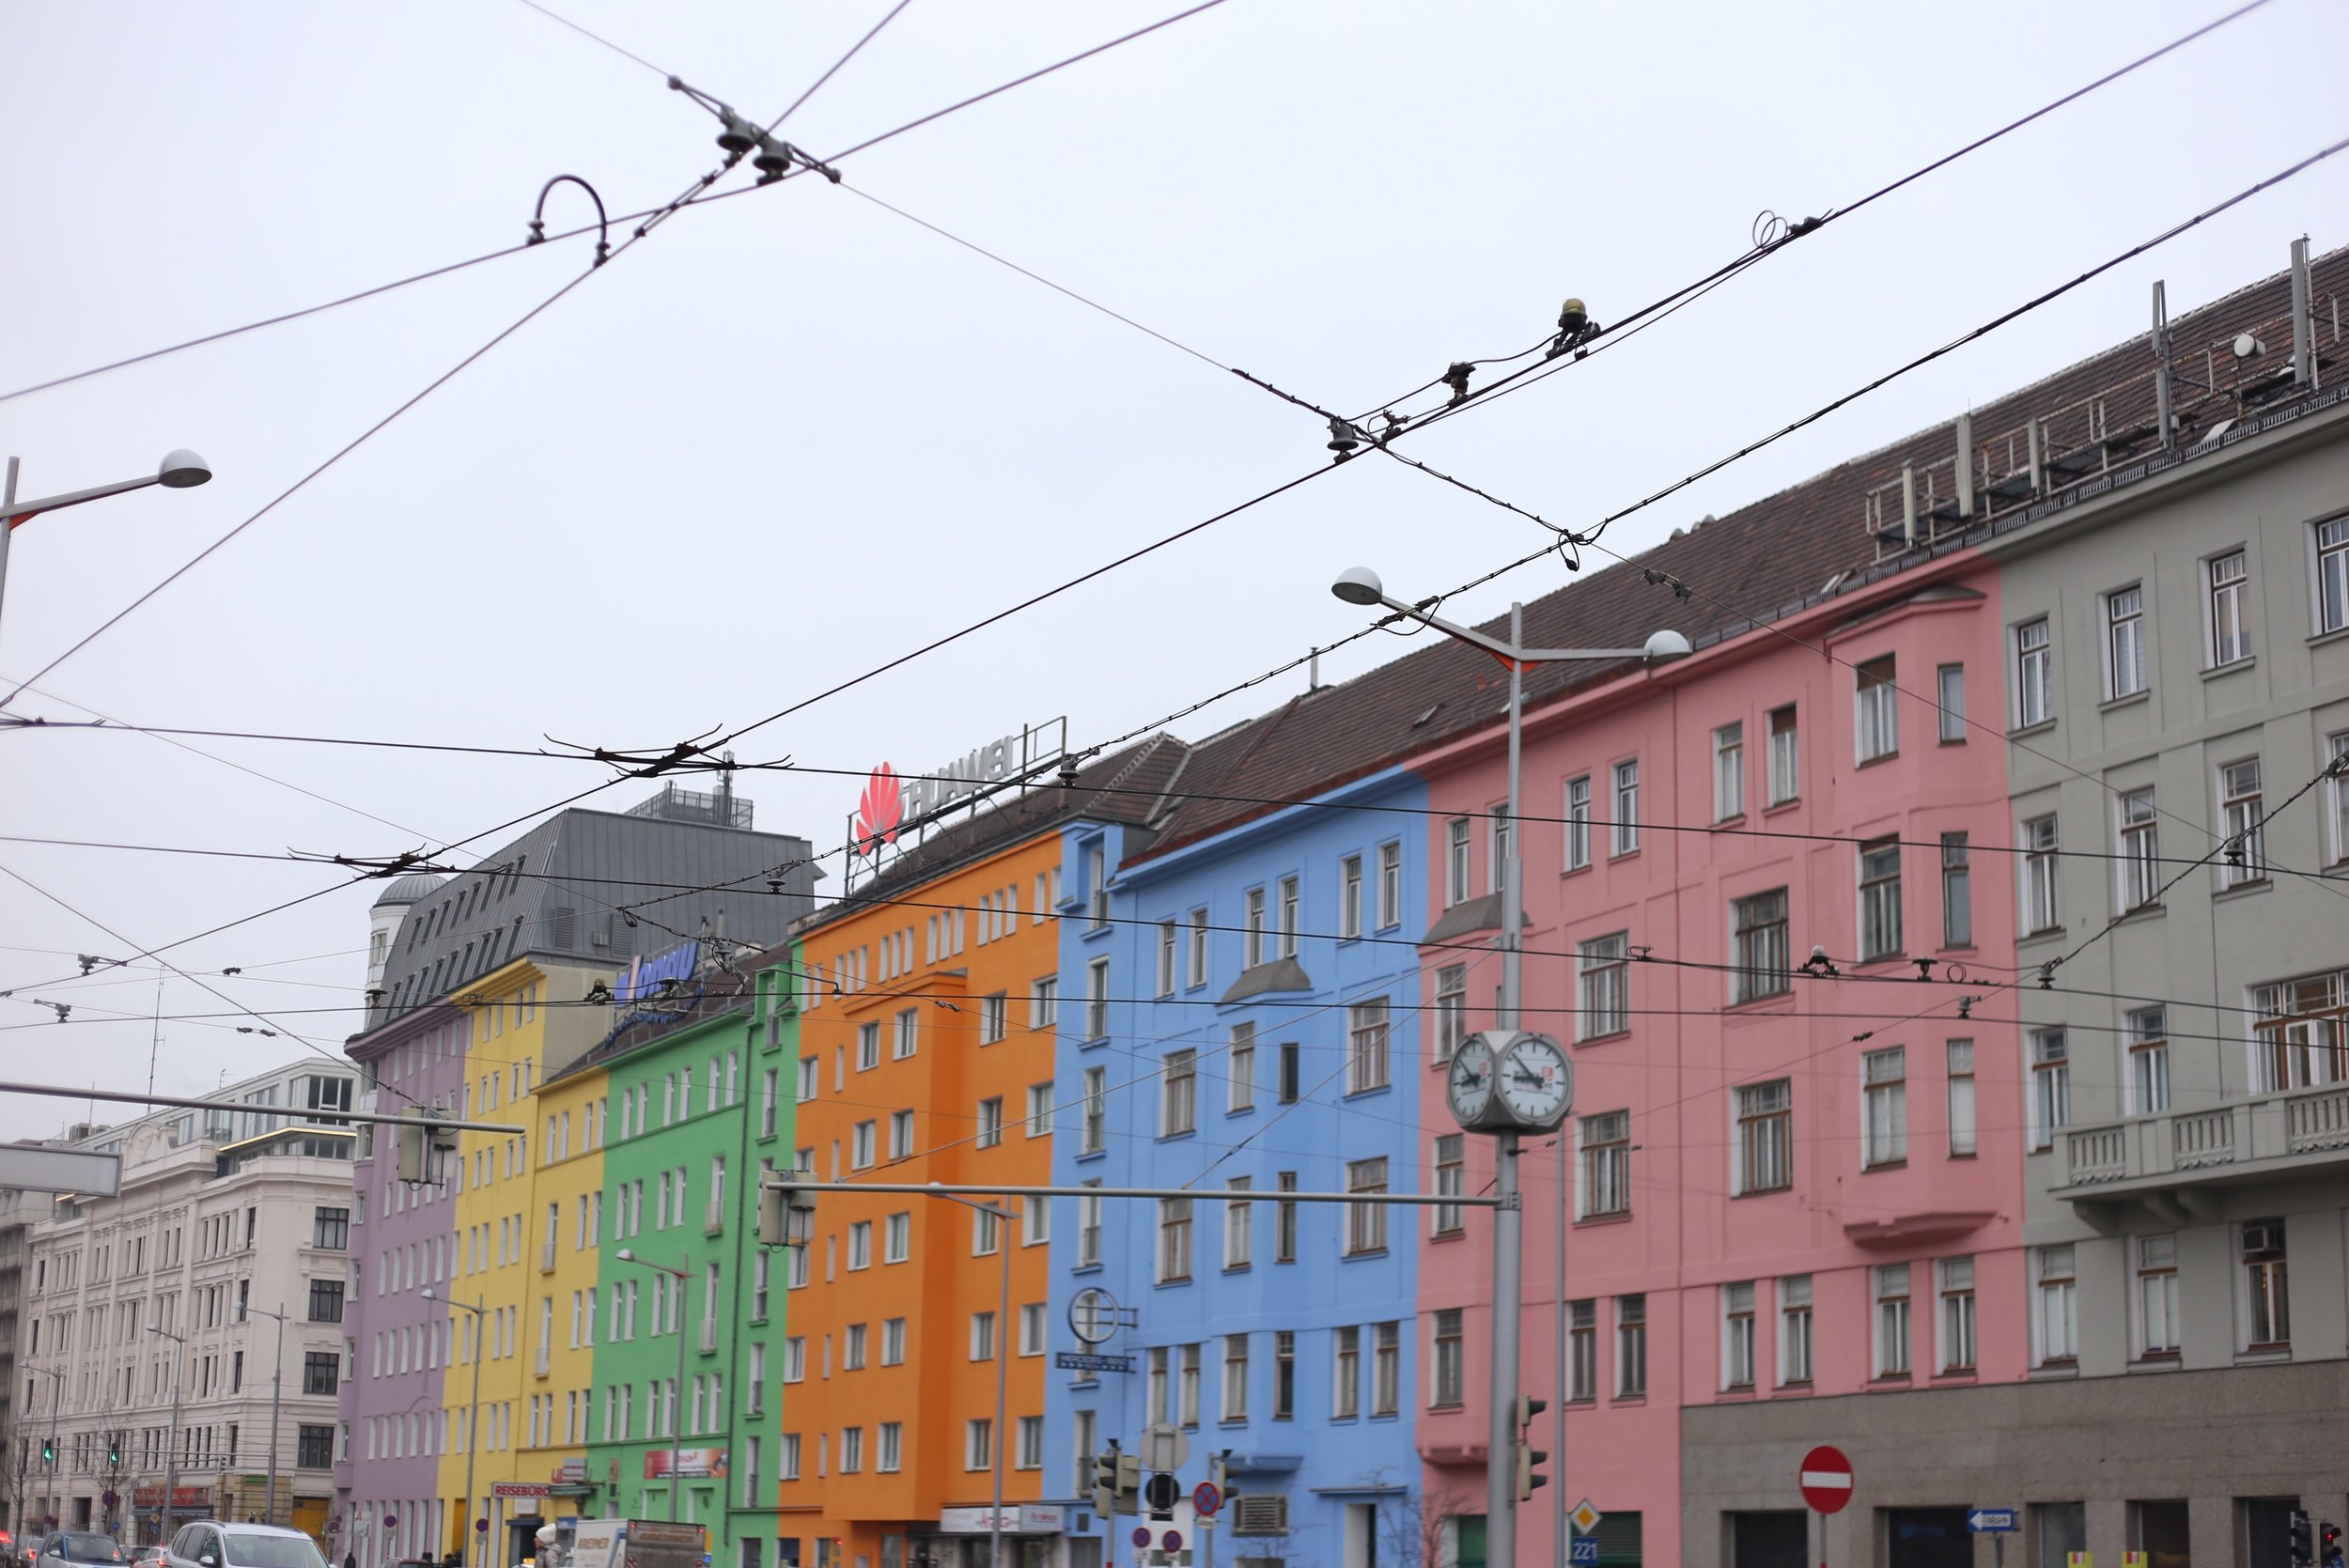 pastel houses and tram lines